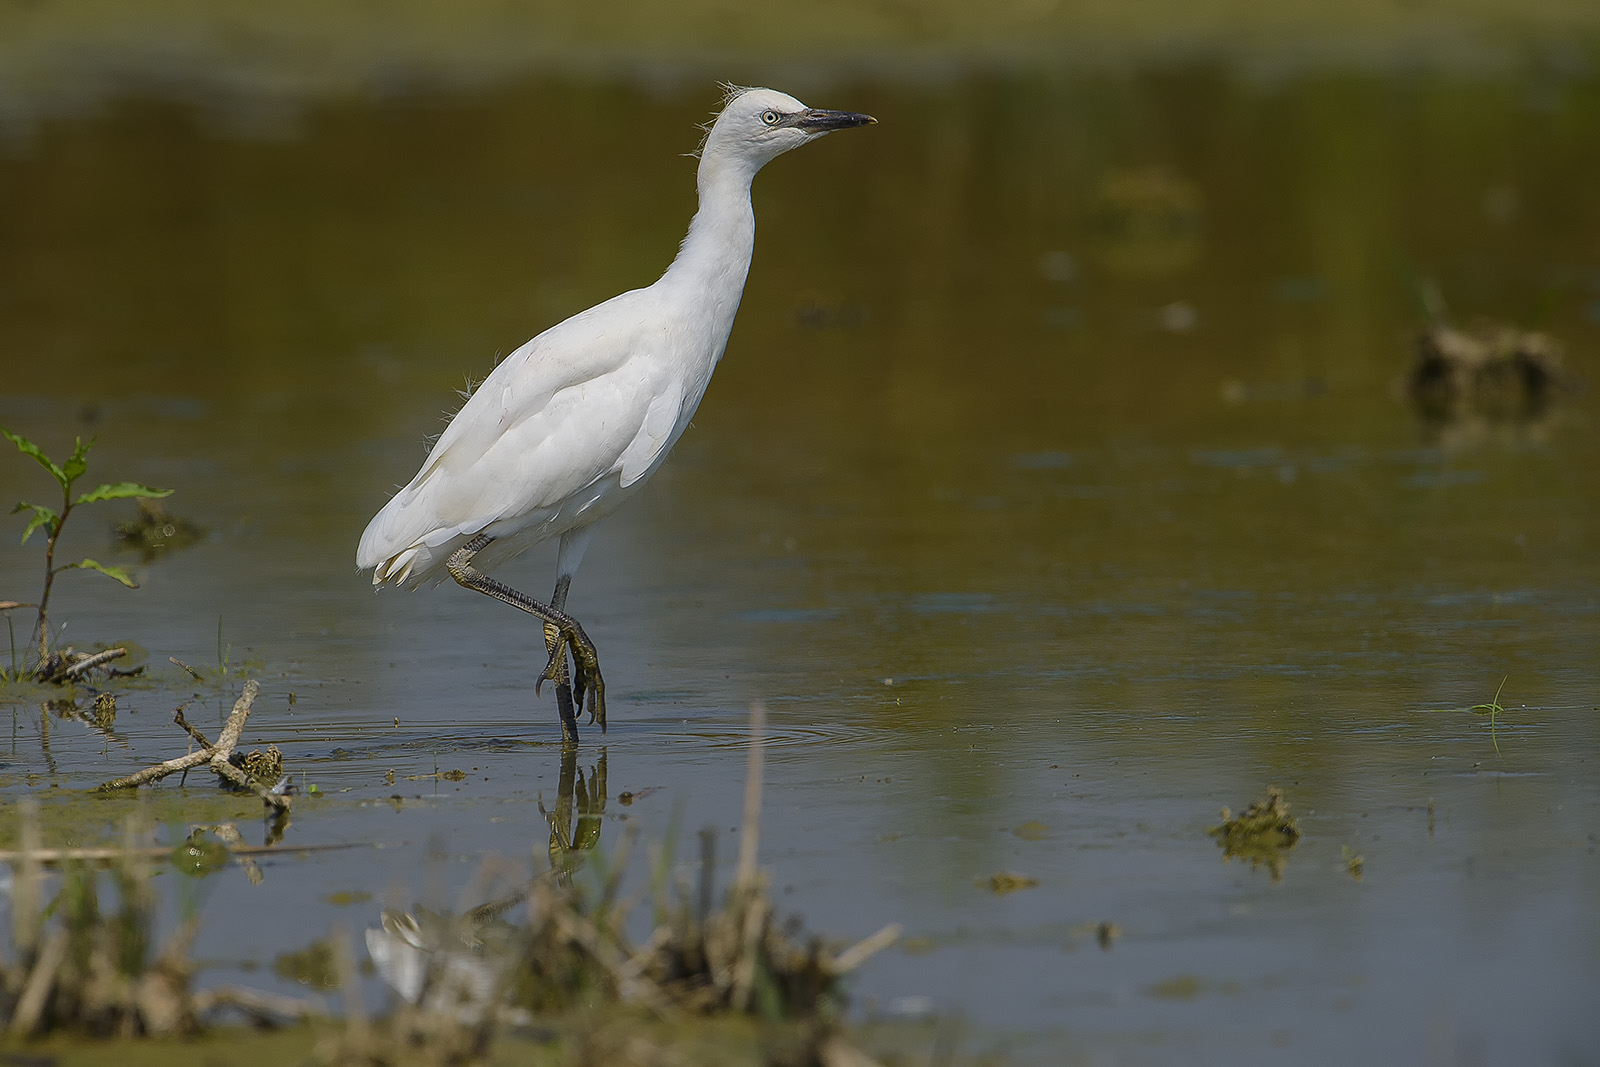 juv. Bubulcus ibis – airone guardabuoi – cattle egret